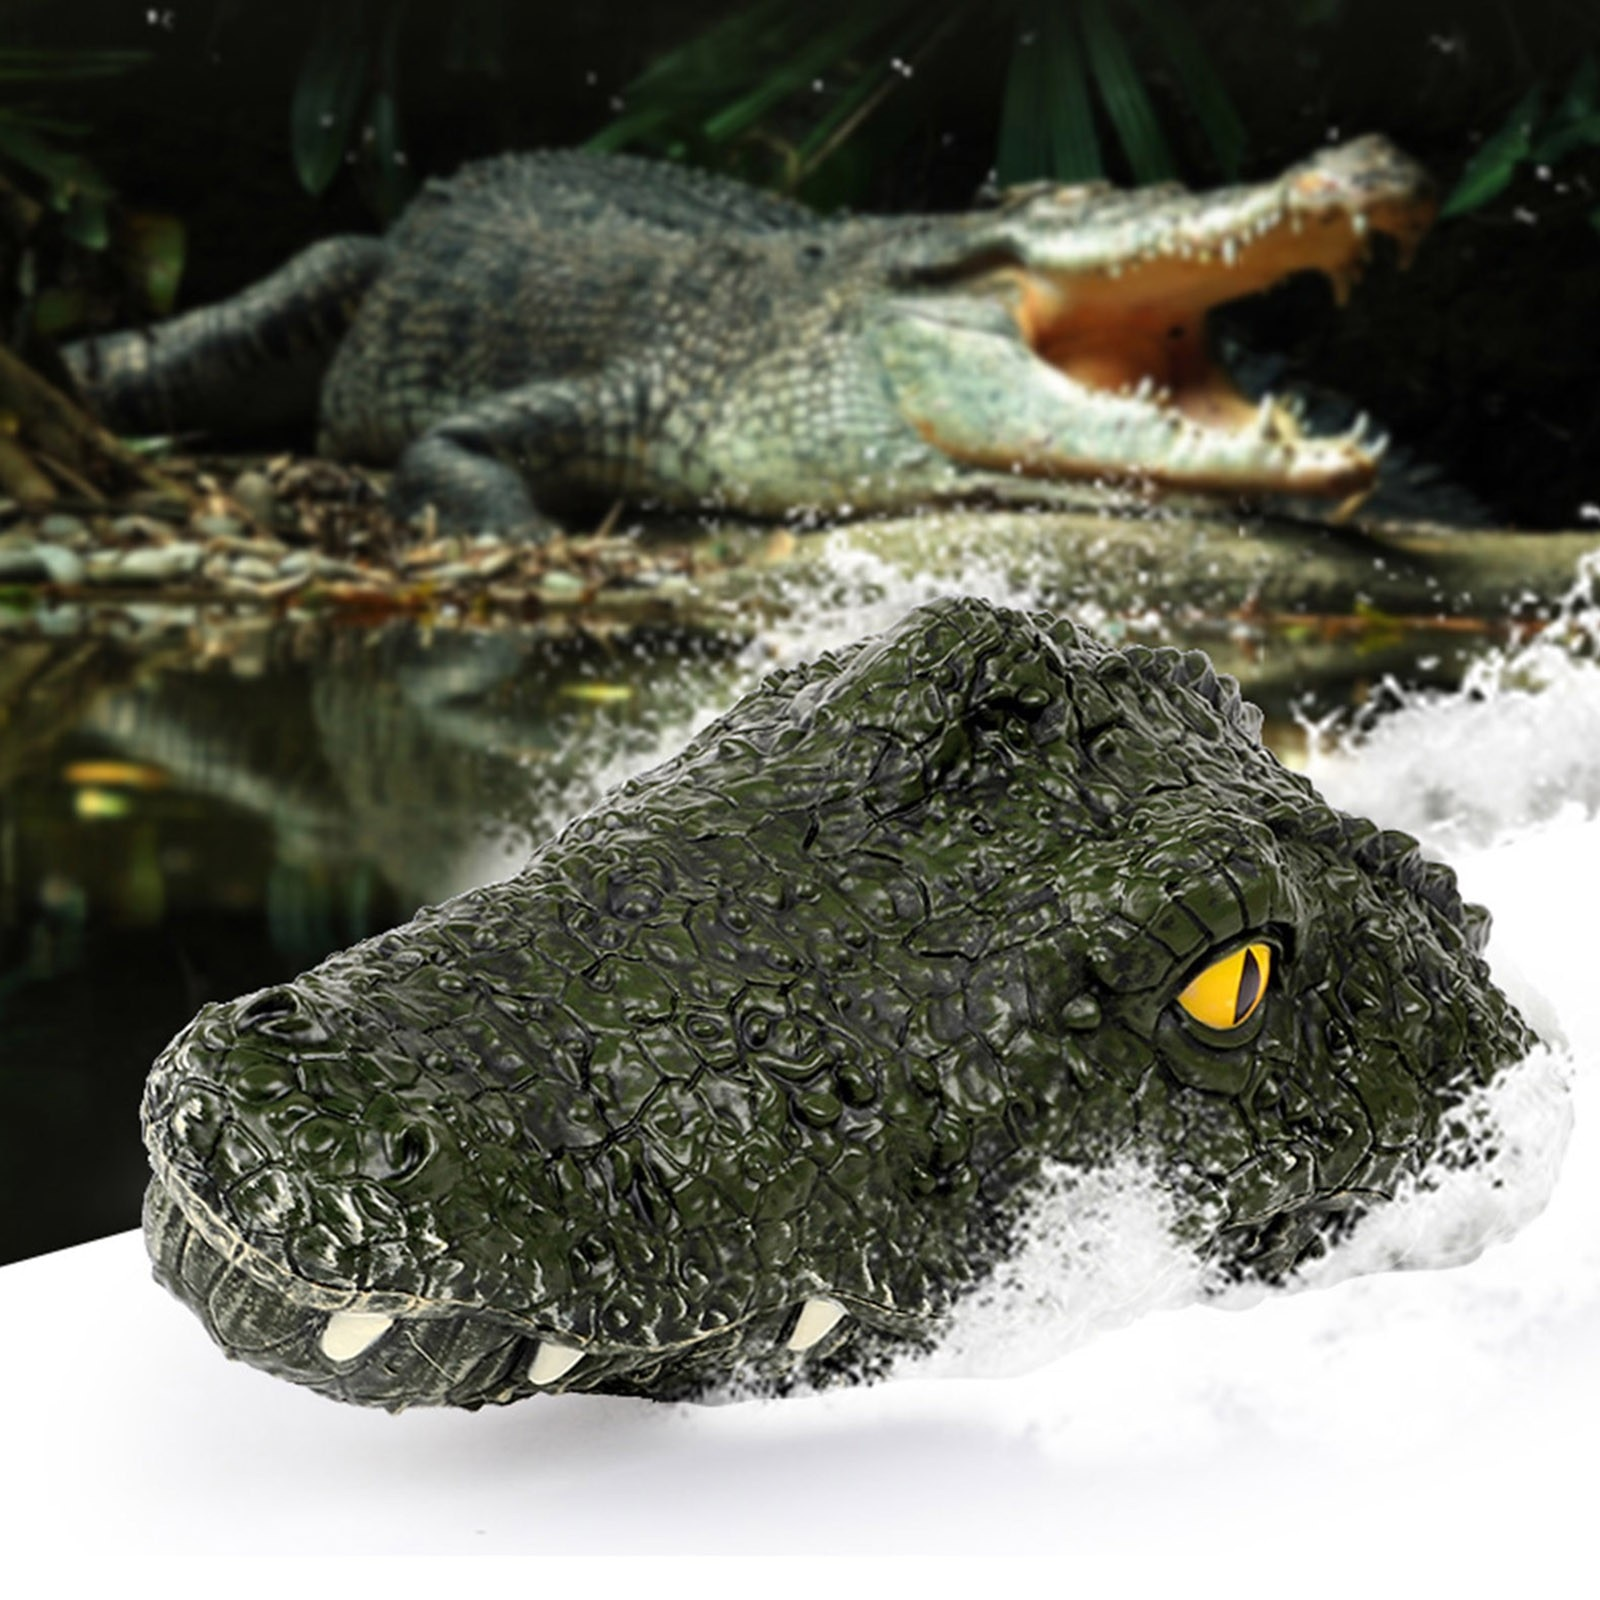 2.4G remote control 4 channel remote control electric racing crocodile head remote control spoof toy outdoor toy лодка 40*